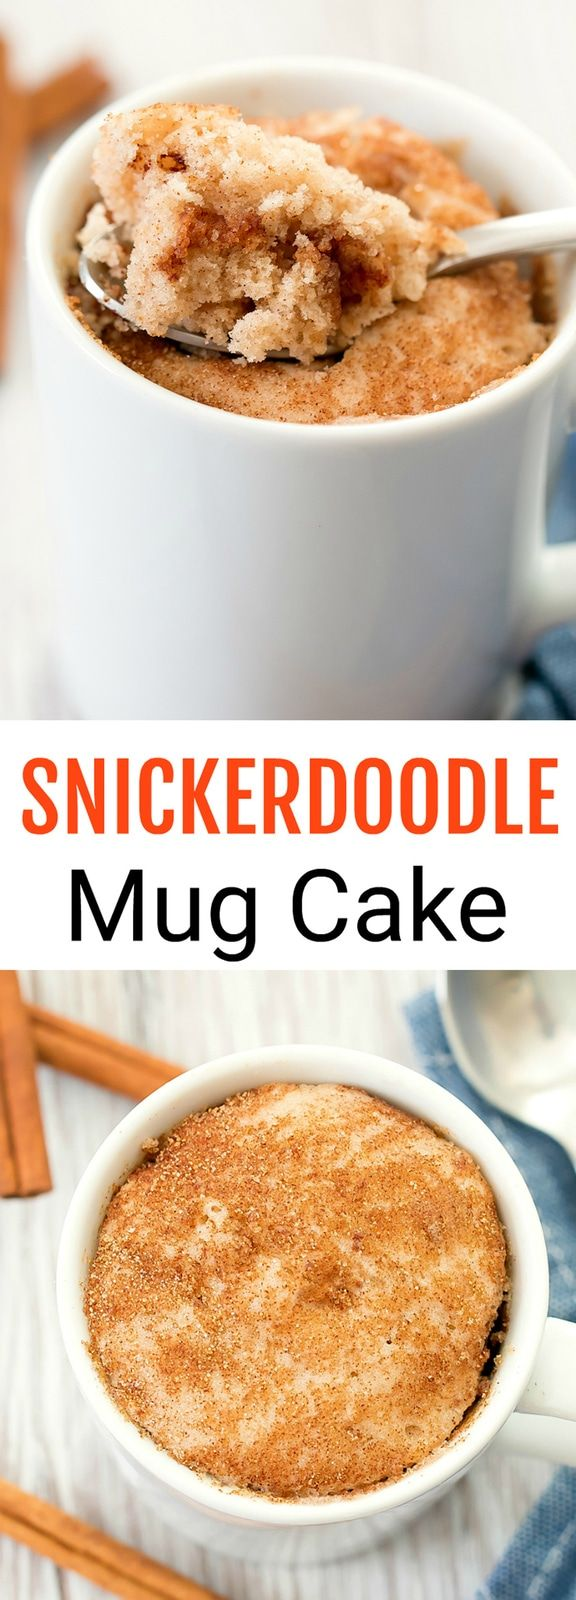 Snickerdoodle Mug Cake | Recipe | Mug recipes, Food ...